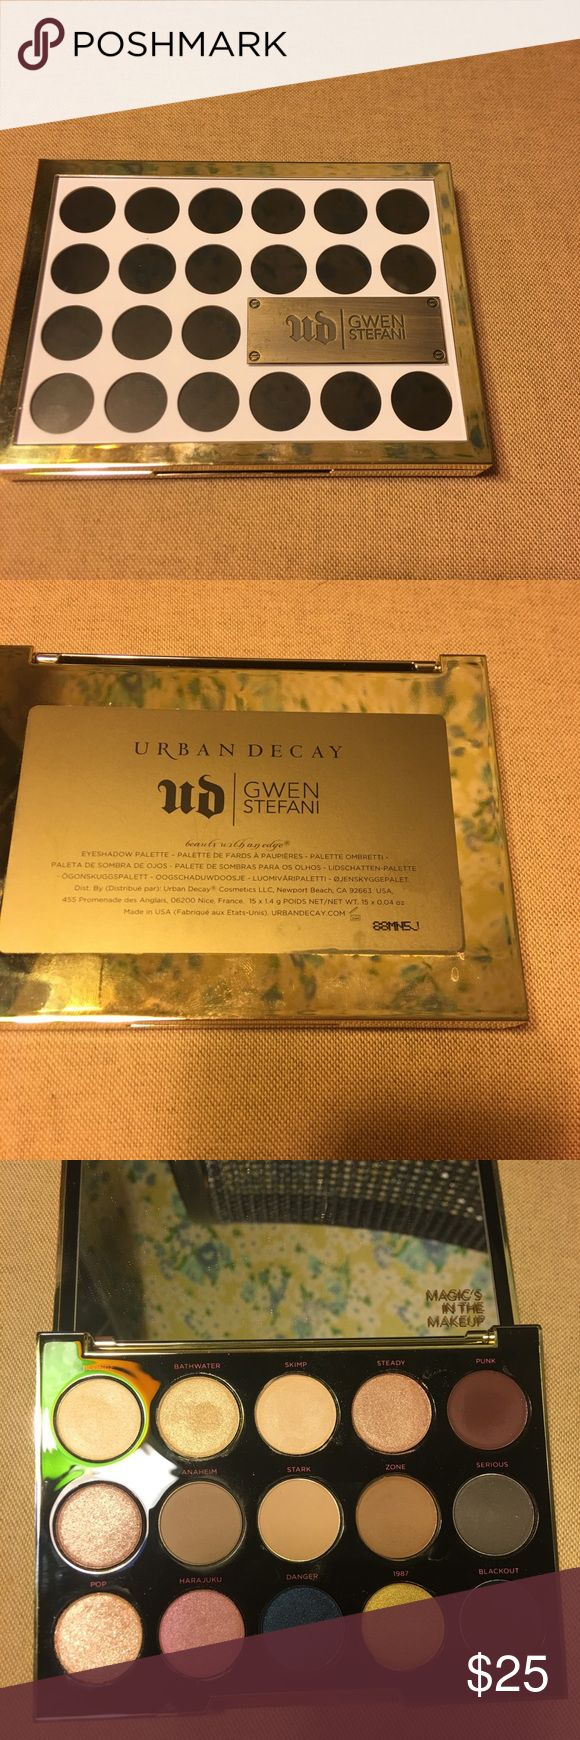 Urban Decay Gwen Stefani Urban Decay Gwen Stefani Eyeshadow Palette 100% Authentic  Used 5-6 times  Includes original box   No trades Urban Decay Makeup Eyeshadow